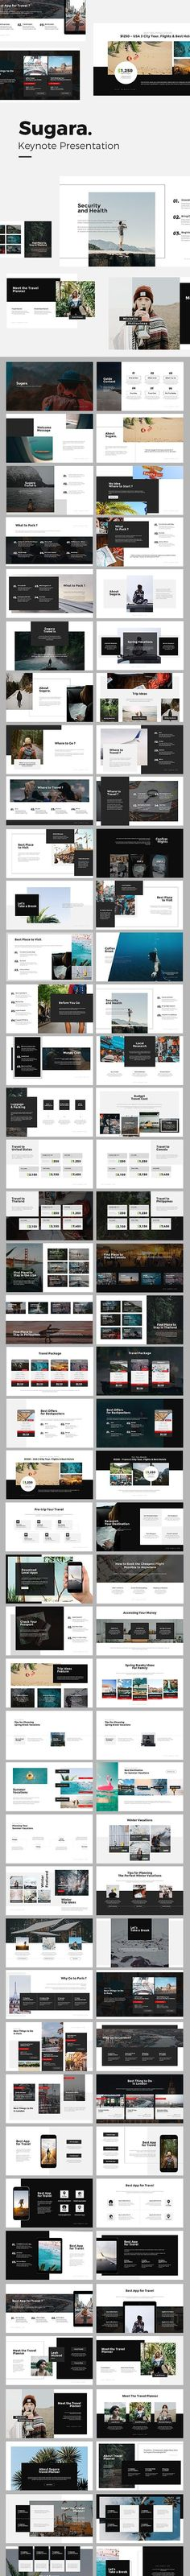 Buy Sugara Travel Guides Keynote Template by punkl on GraphicRiver. What is Sugara Travel Guides Keynote Presentation ? Sugara Travel Guides Powerpoint Presentation is about helping yo. Best Travel Apps, Packing Tips For Travel, Travel Guides, Business Presentation Templates, Presentation Design, Vacation Planner, Vacation Trips, Image Layout, Creative Powerpoint Templates